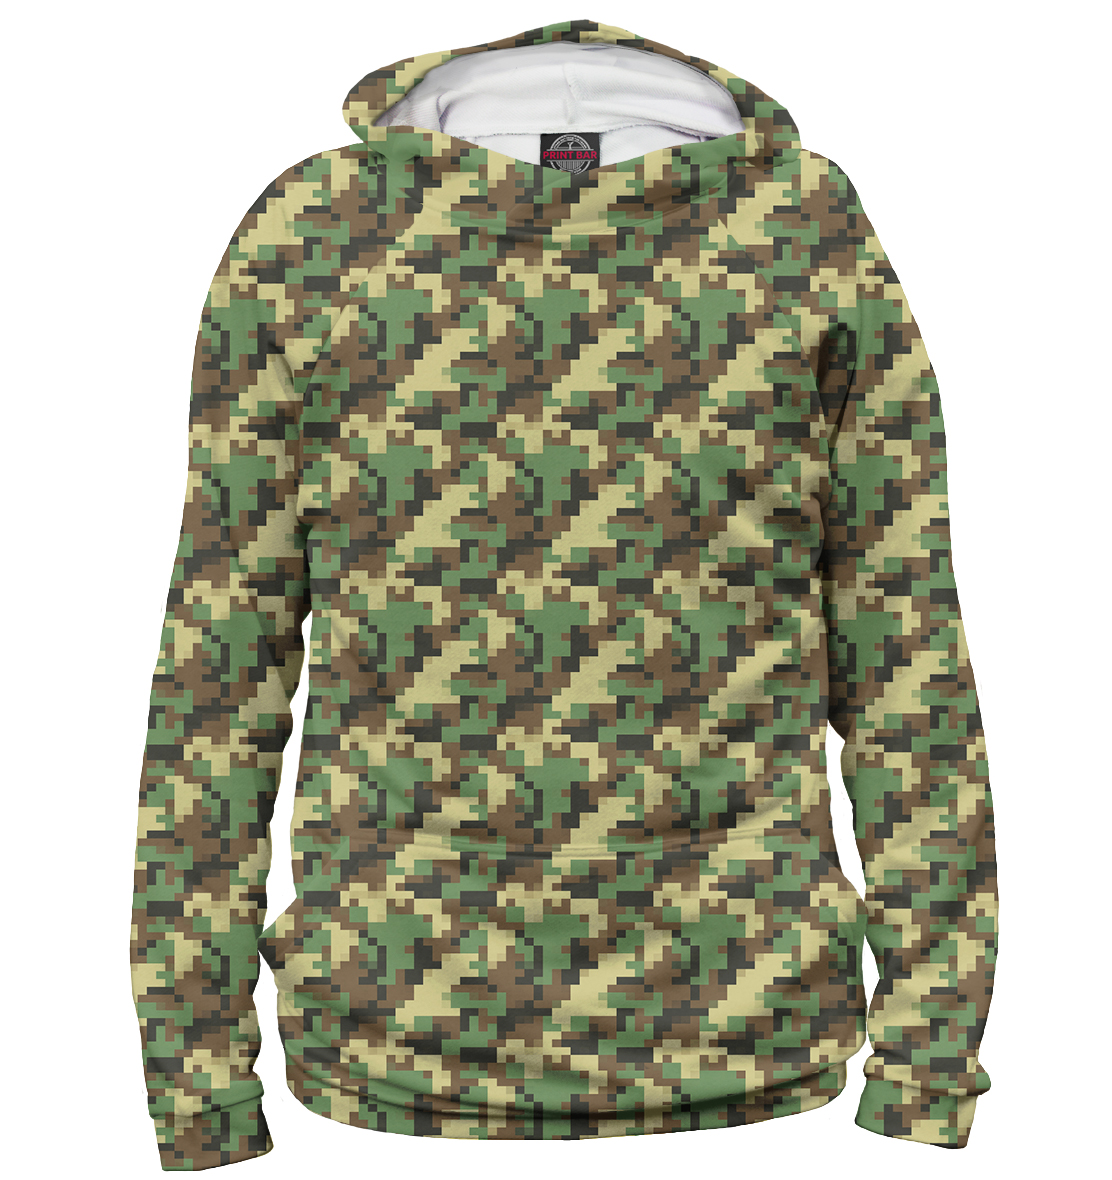 Green Pixel Camouflage